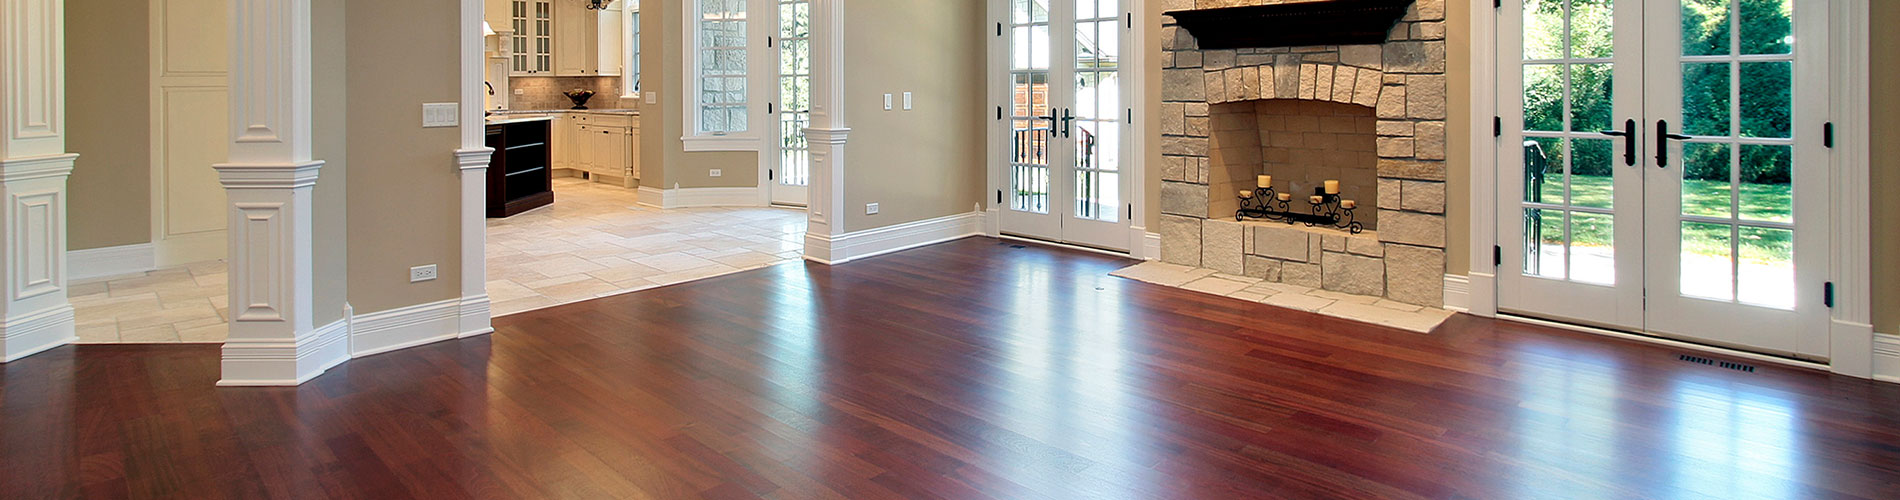 Hardwood Flooring in Huntington NY, Northport, Sayville, Smithtown